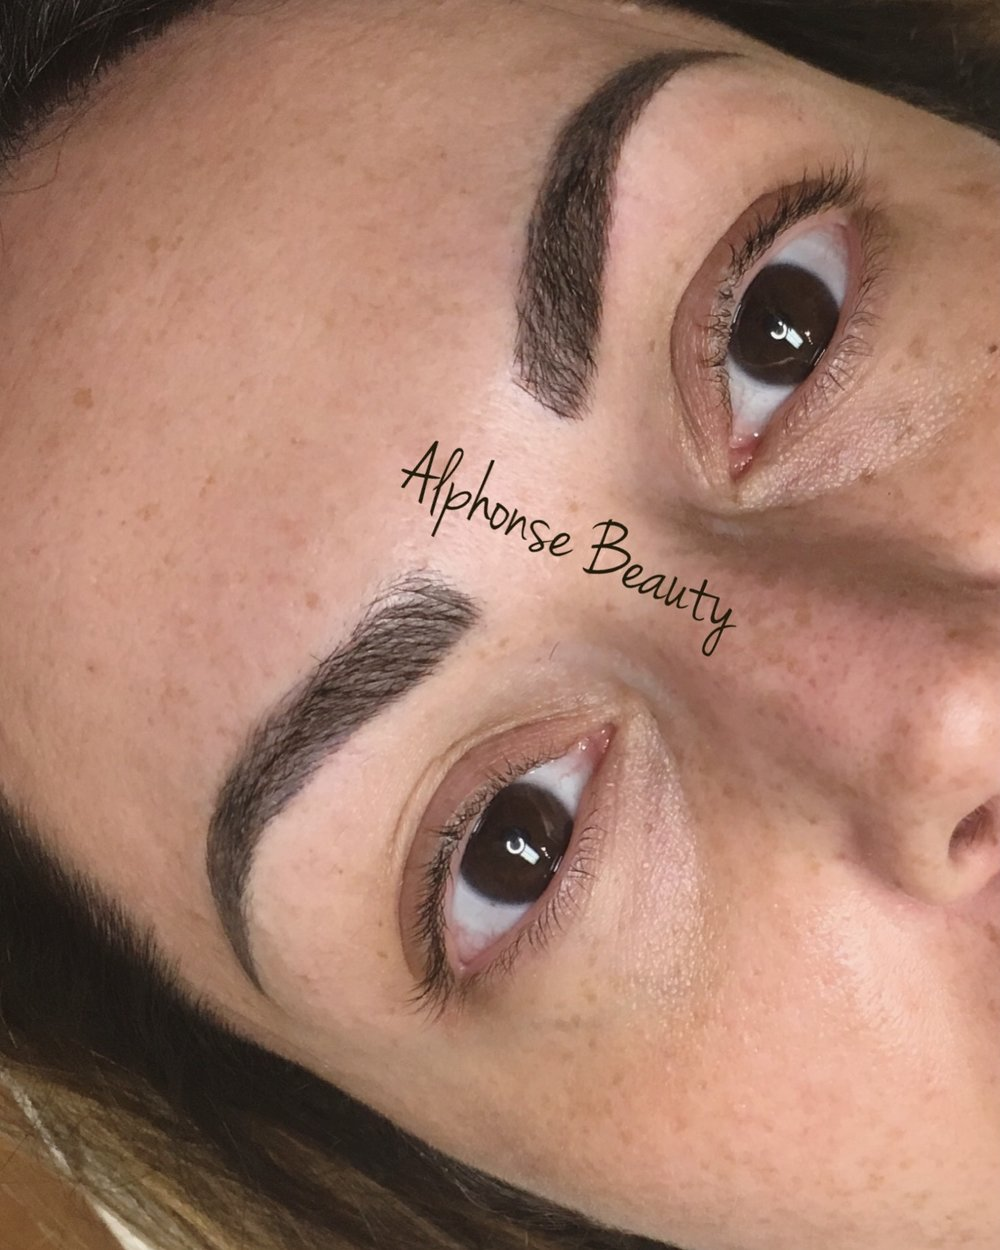 Full Eyebrows from Microblading Procedure at Alphonse Beauty